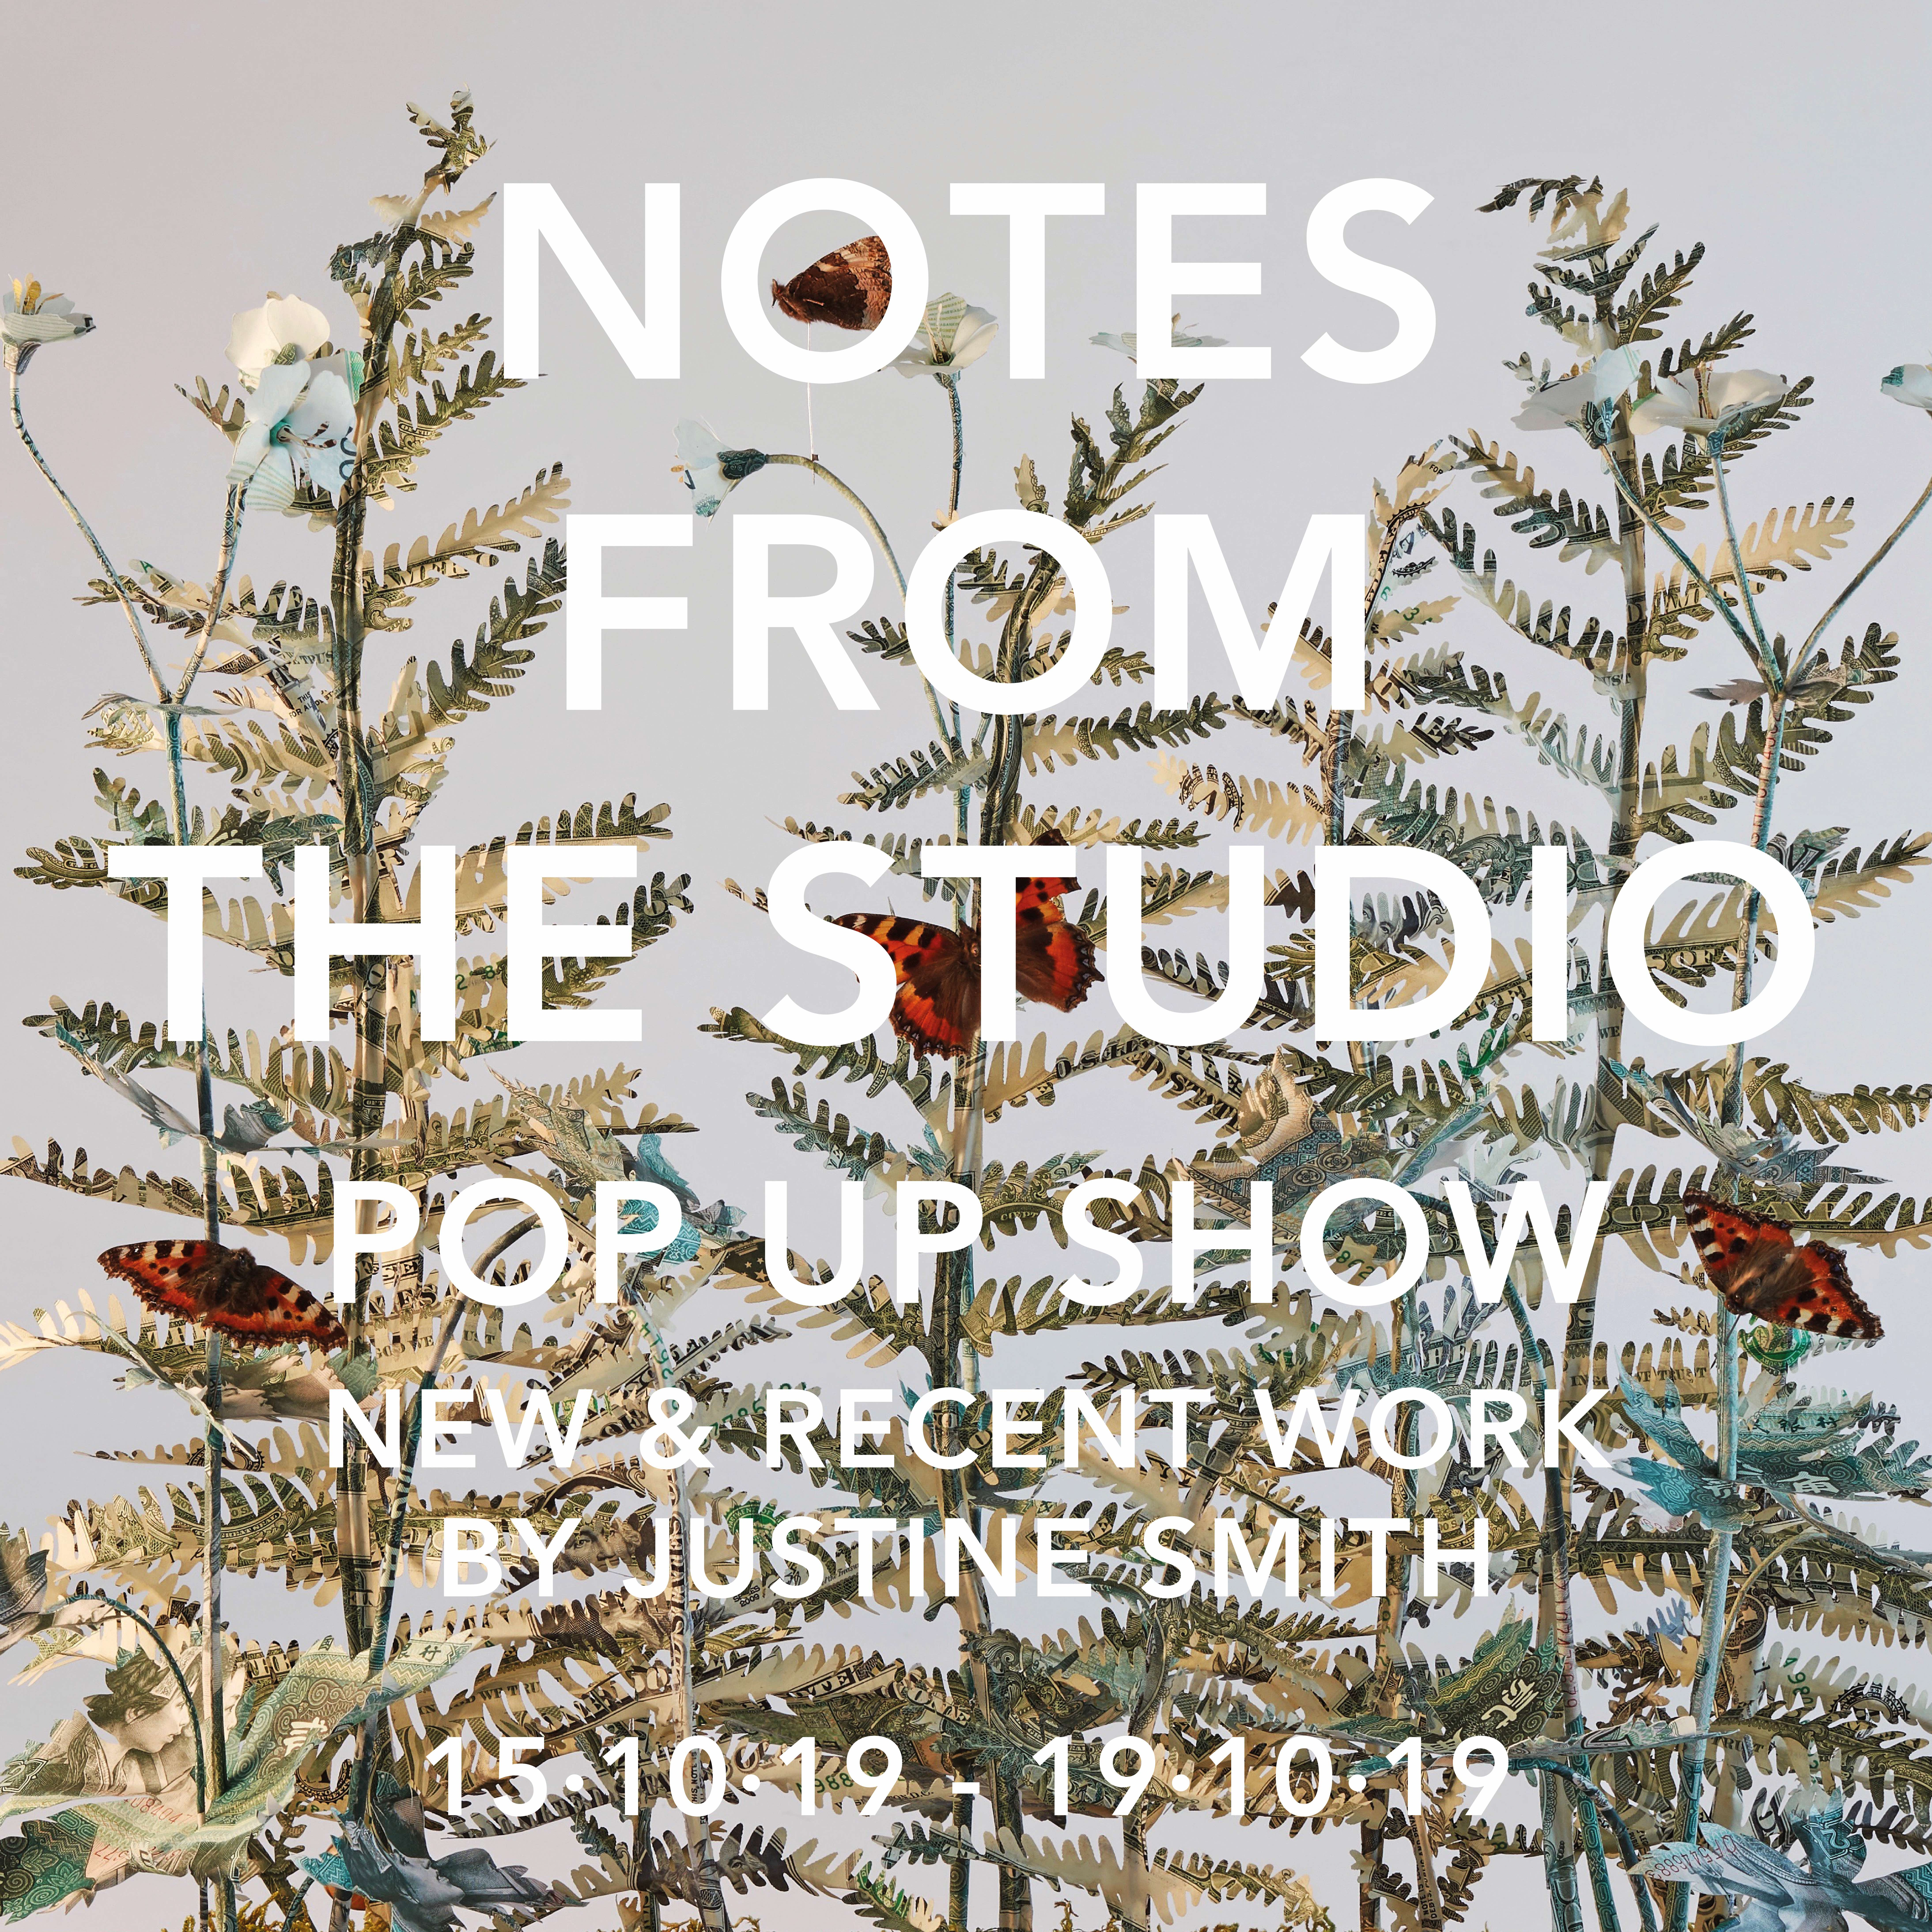 Notes from the Studio